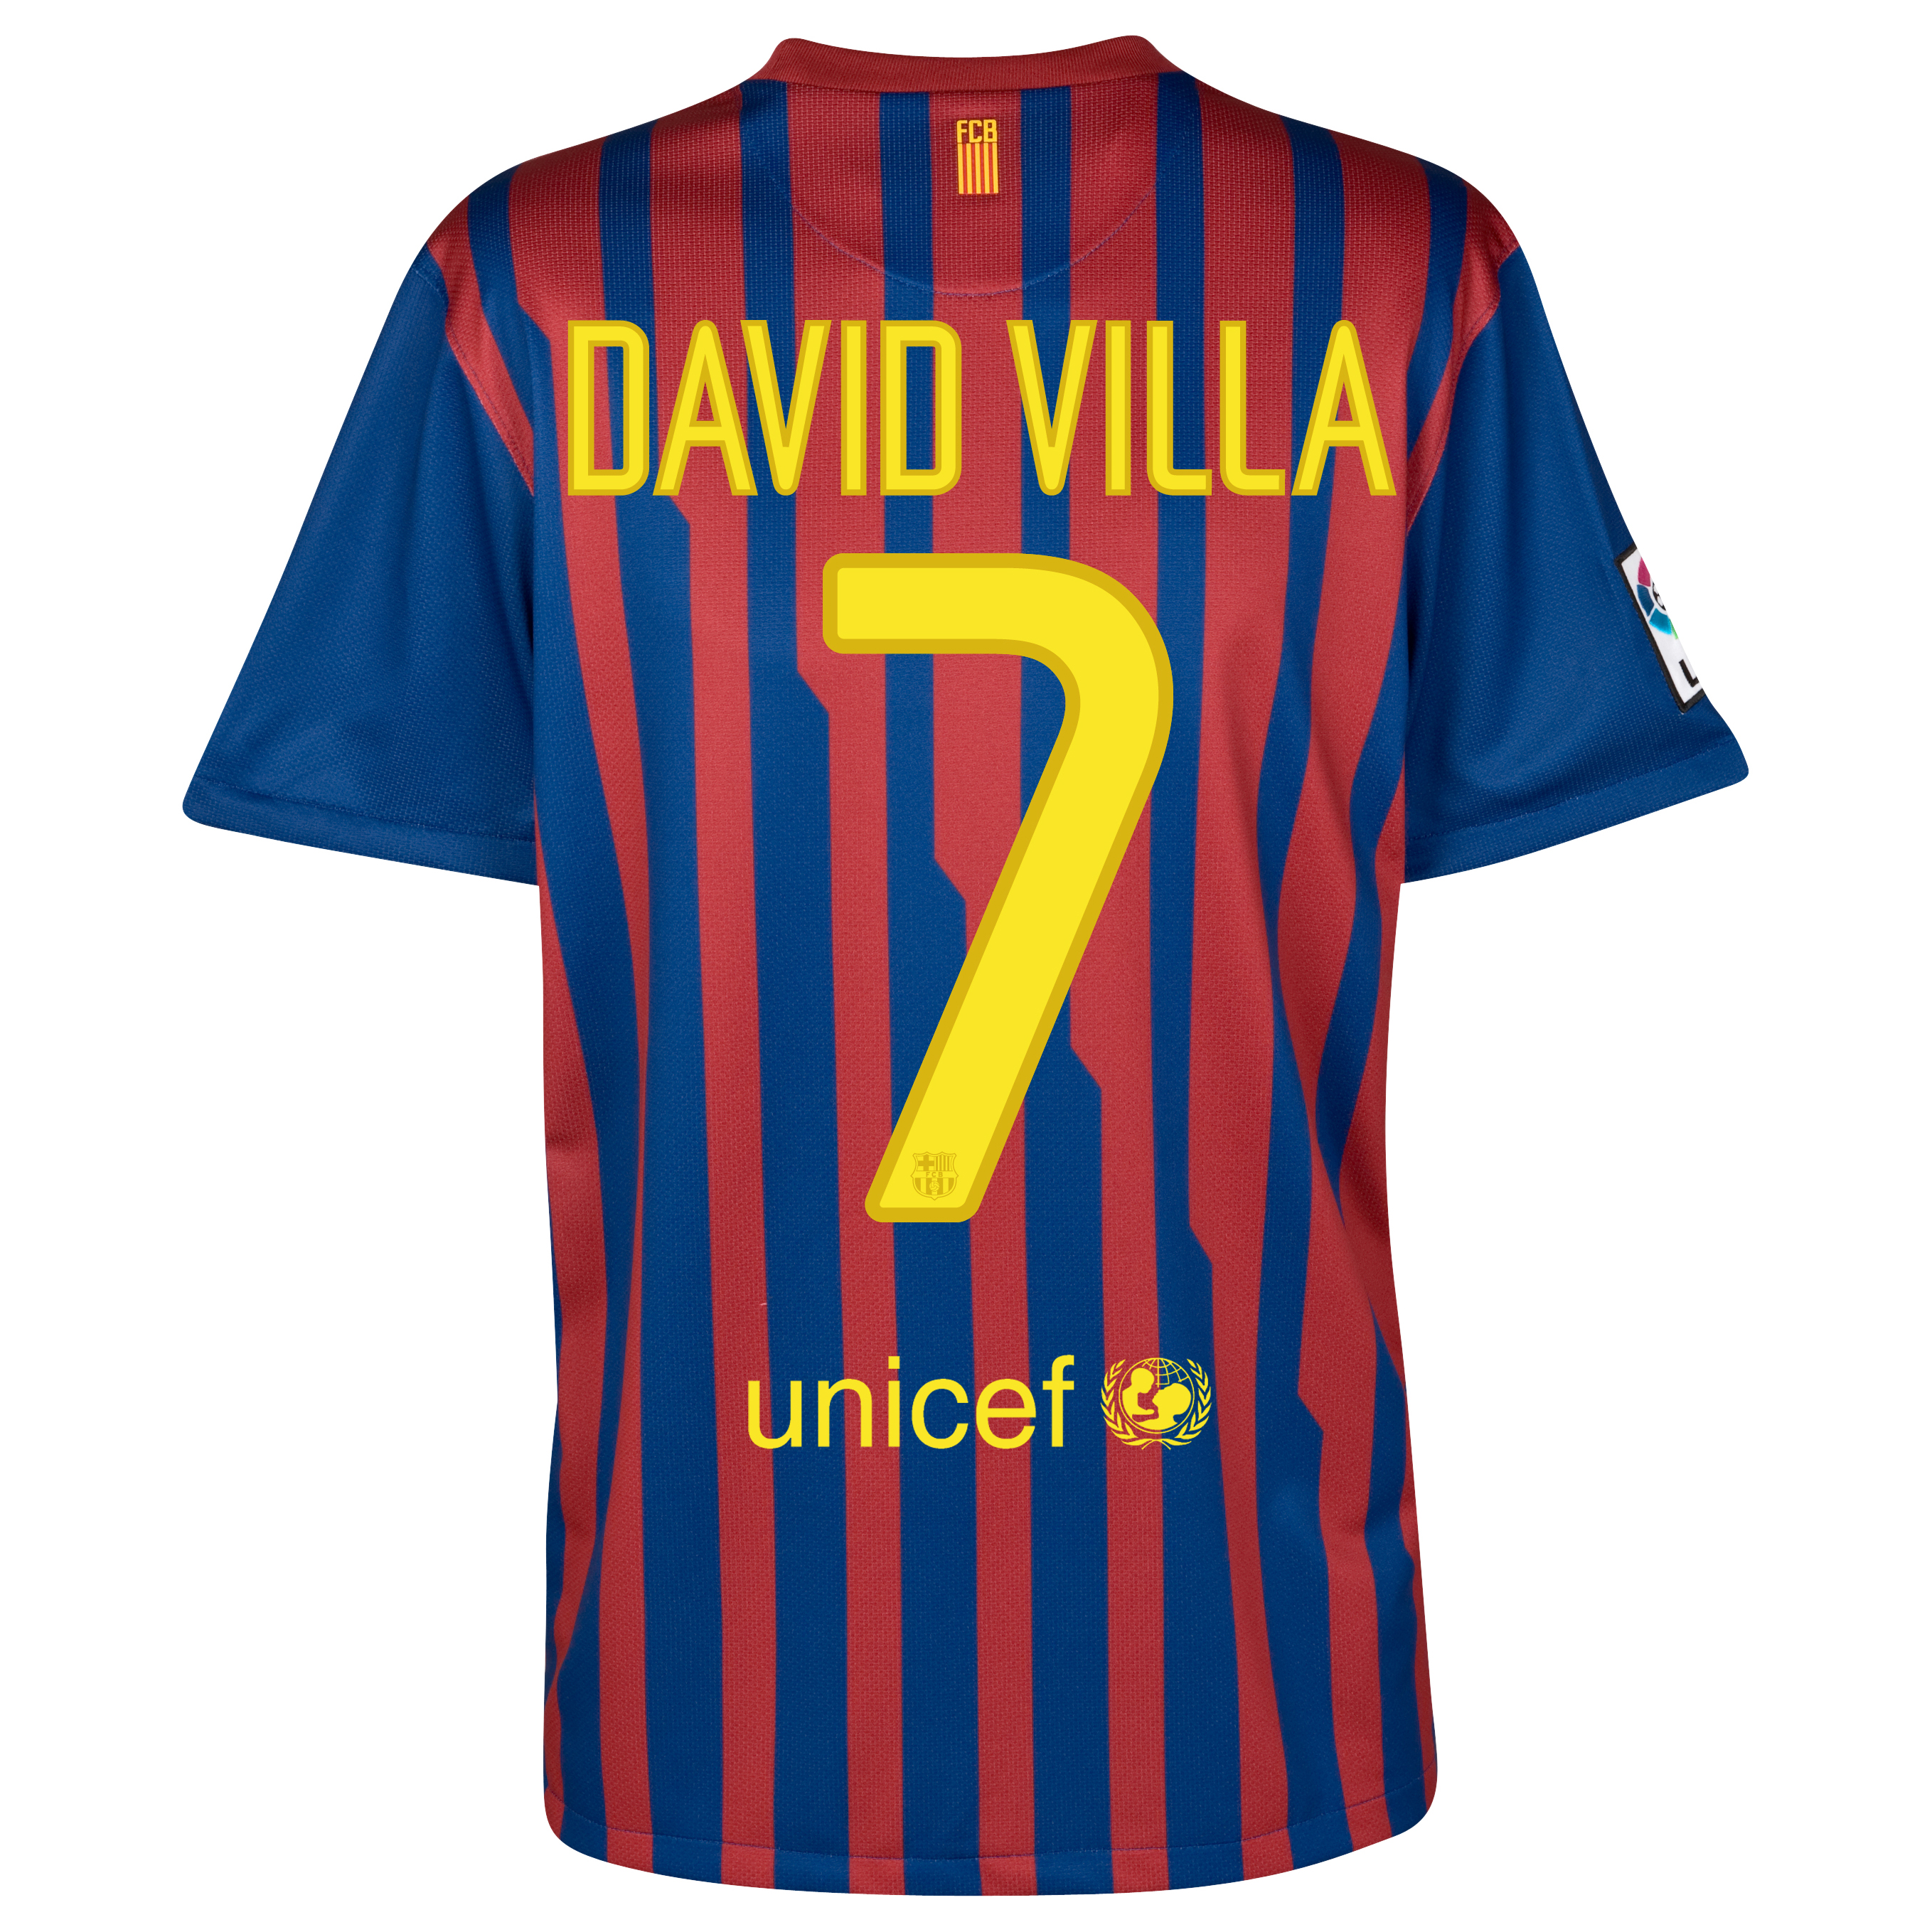 Barcelona Home Shirt 2011/12 with David Villa 7 printing